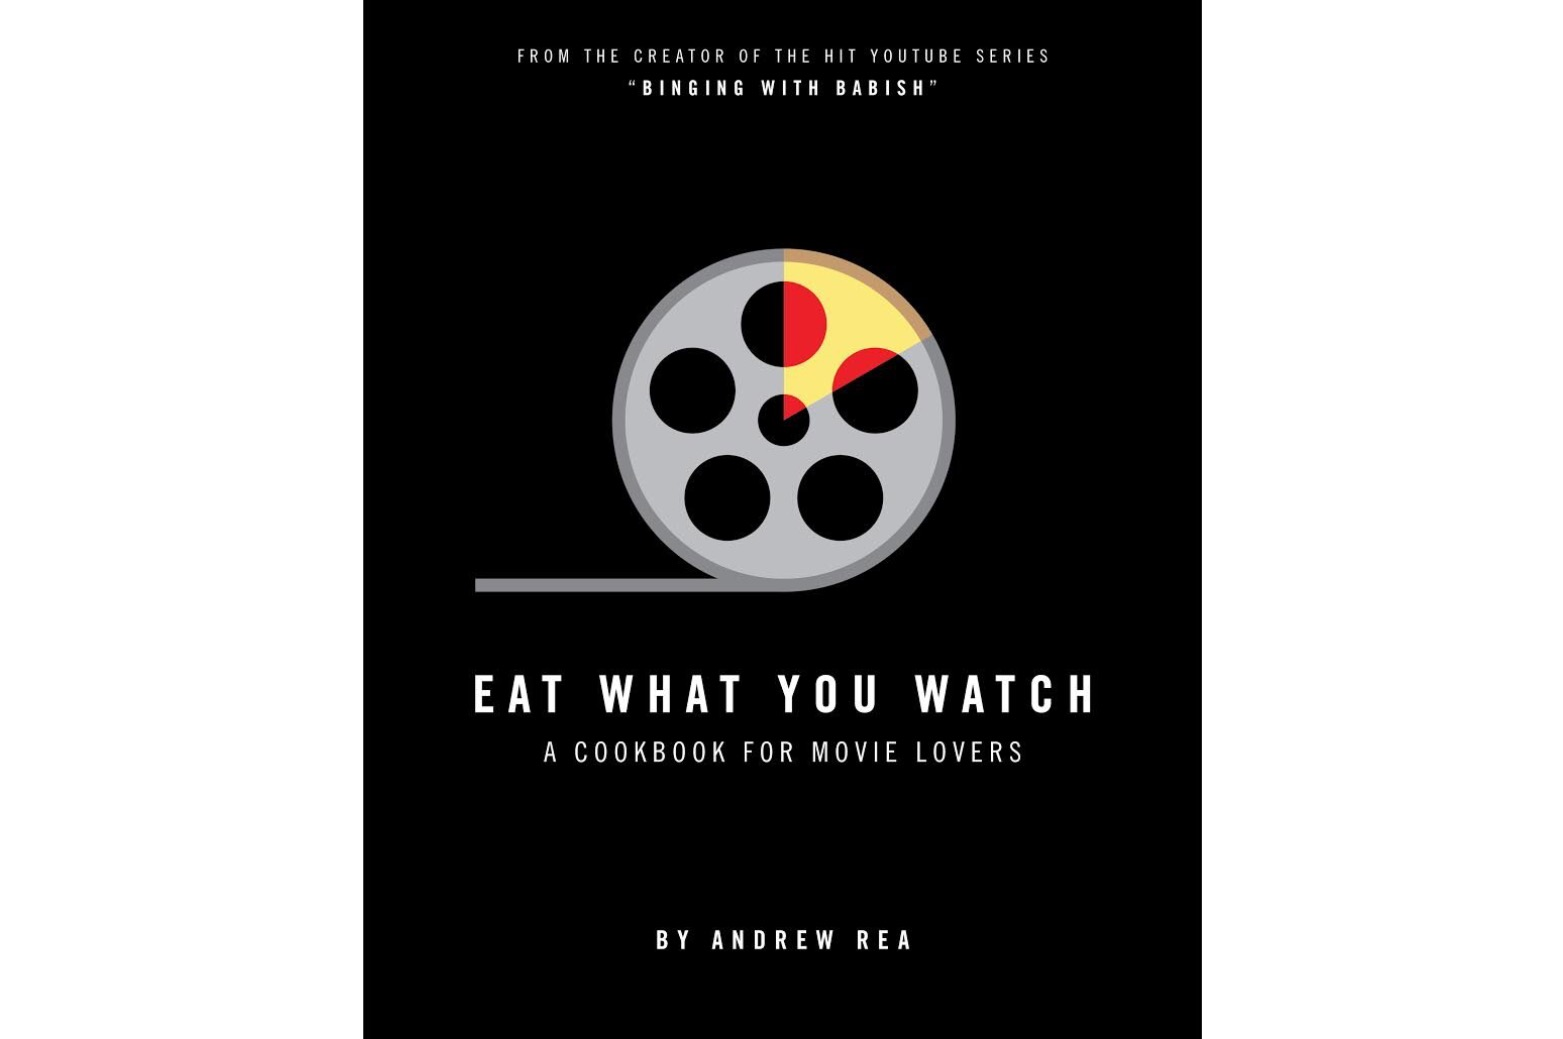 eat-what-you-watch-by-andrea-rea